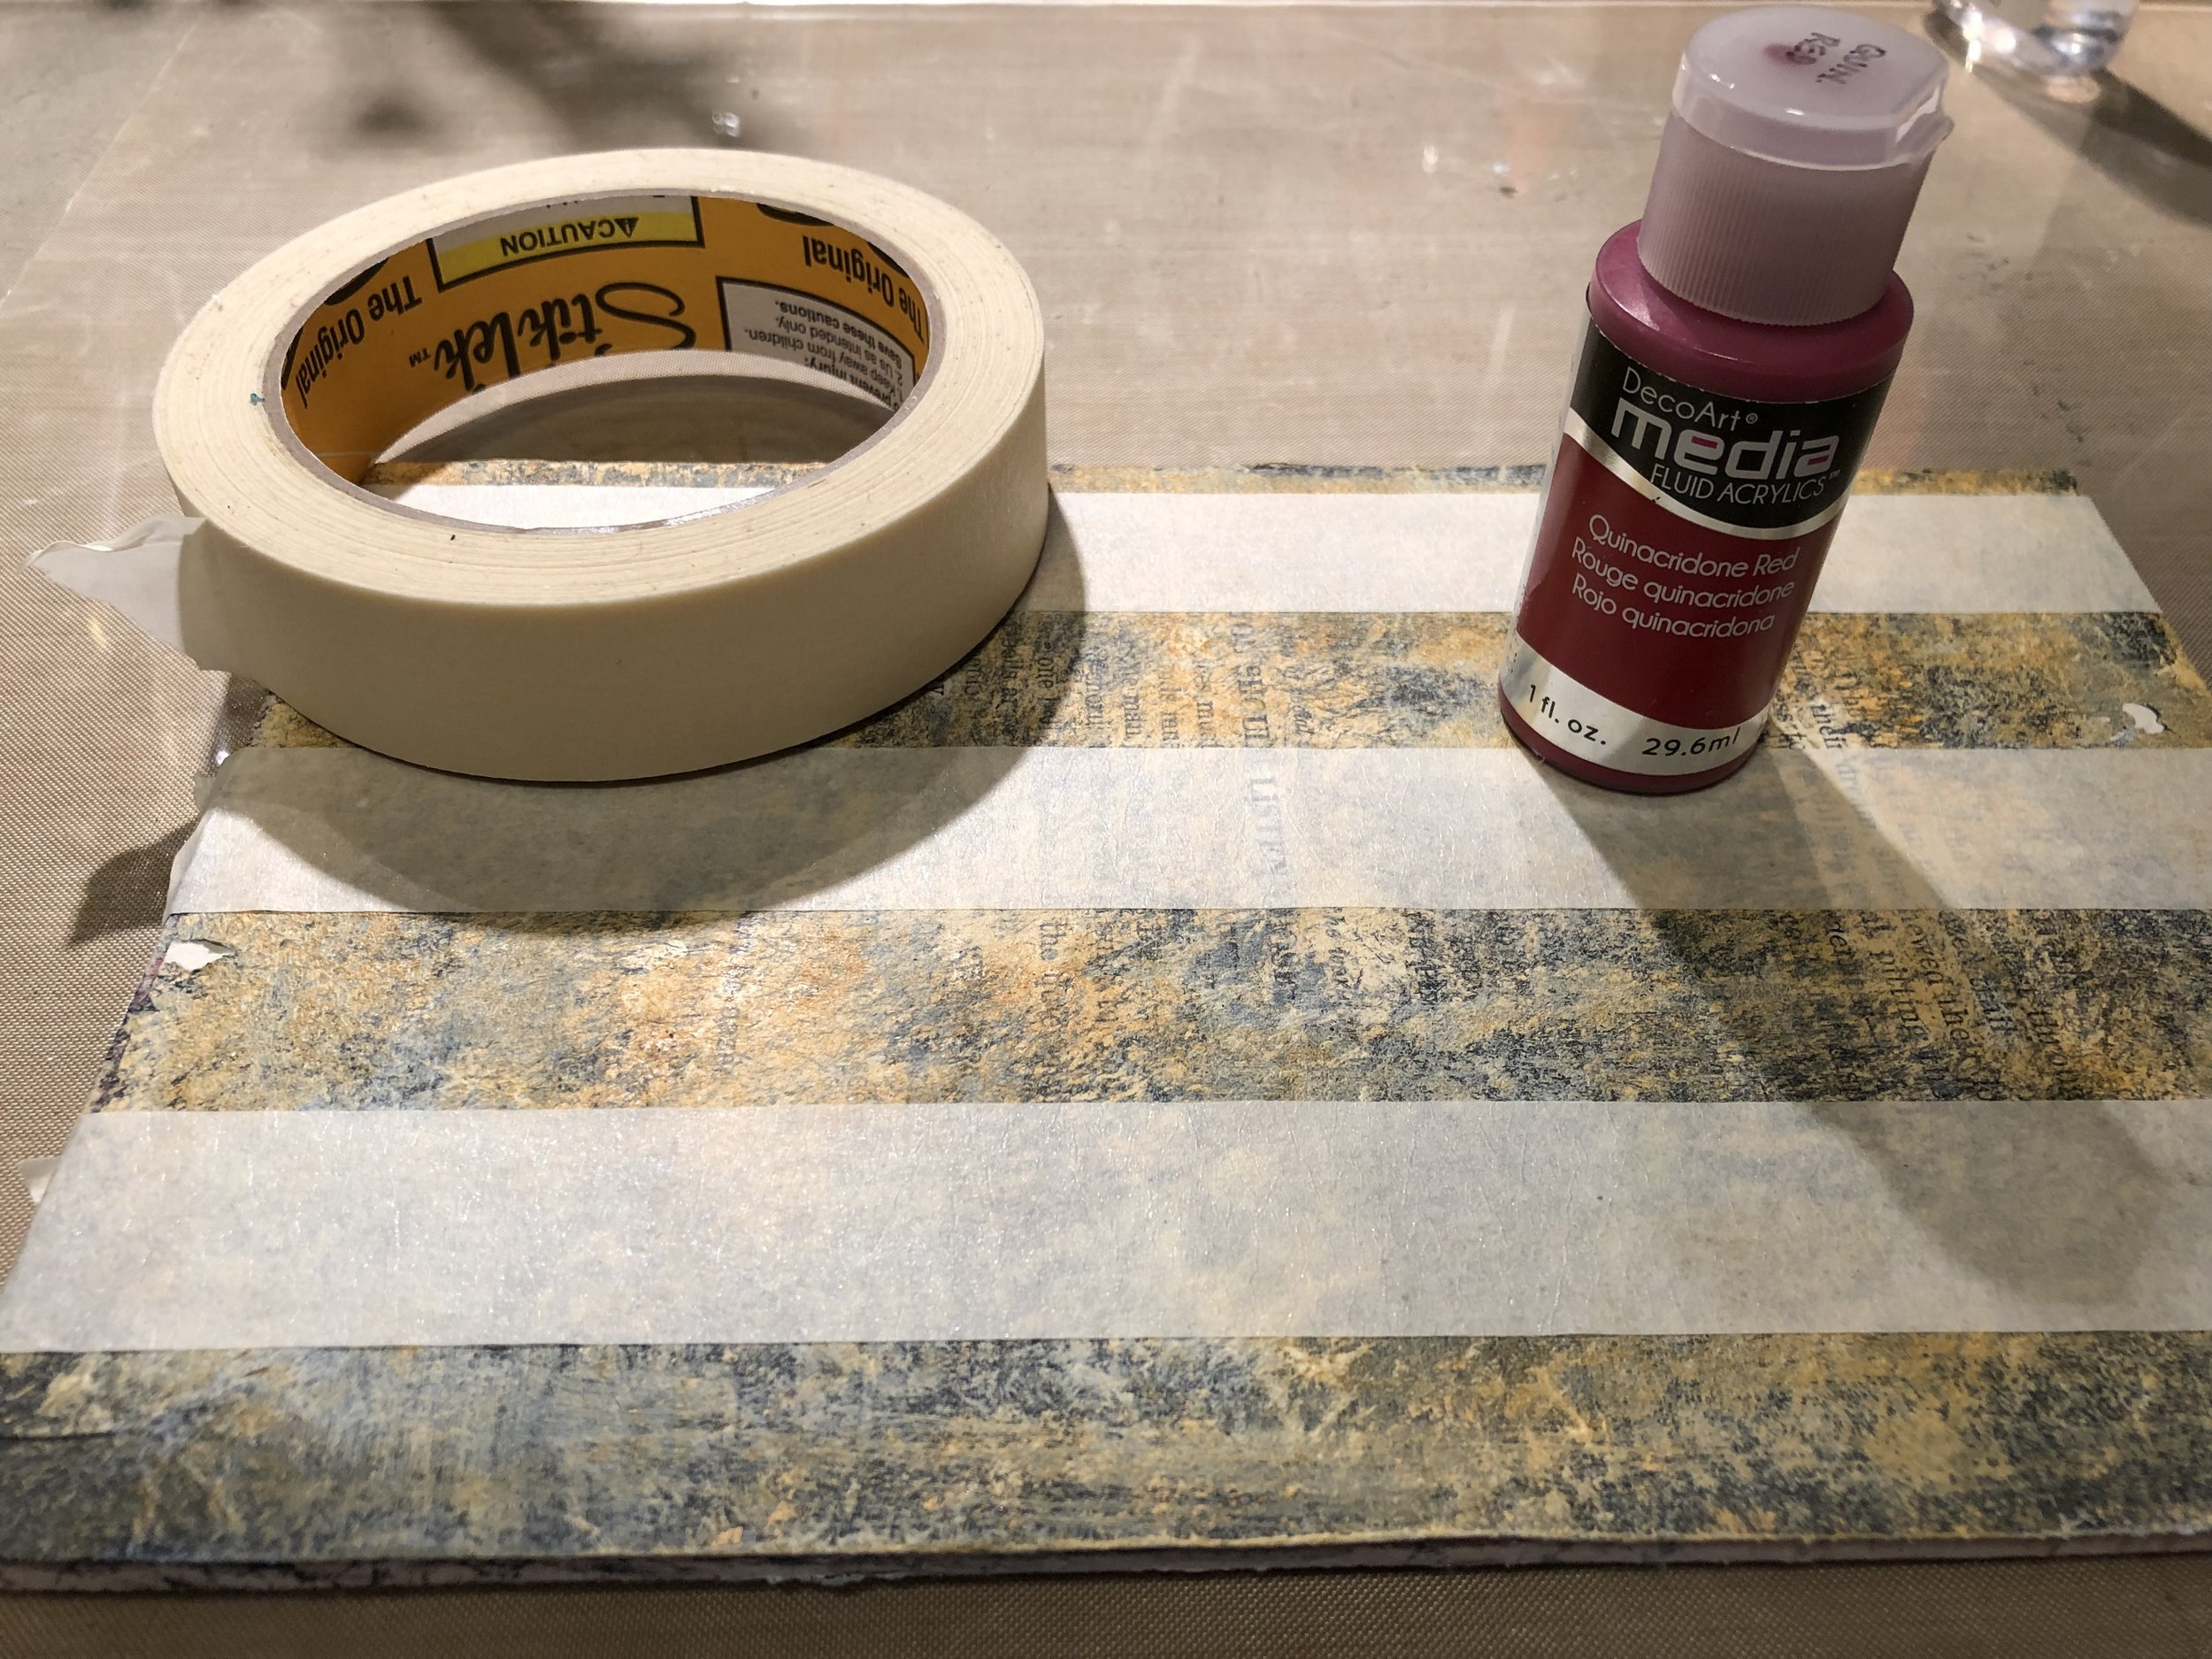 Using masking tape, block off some stripes. Then apply DecoArt Fluid Fluid Acrylic in Quinacridone Red.